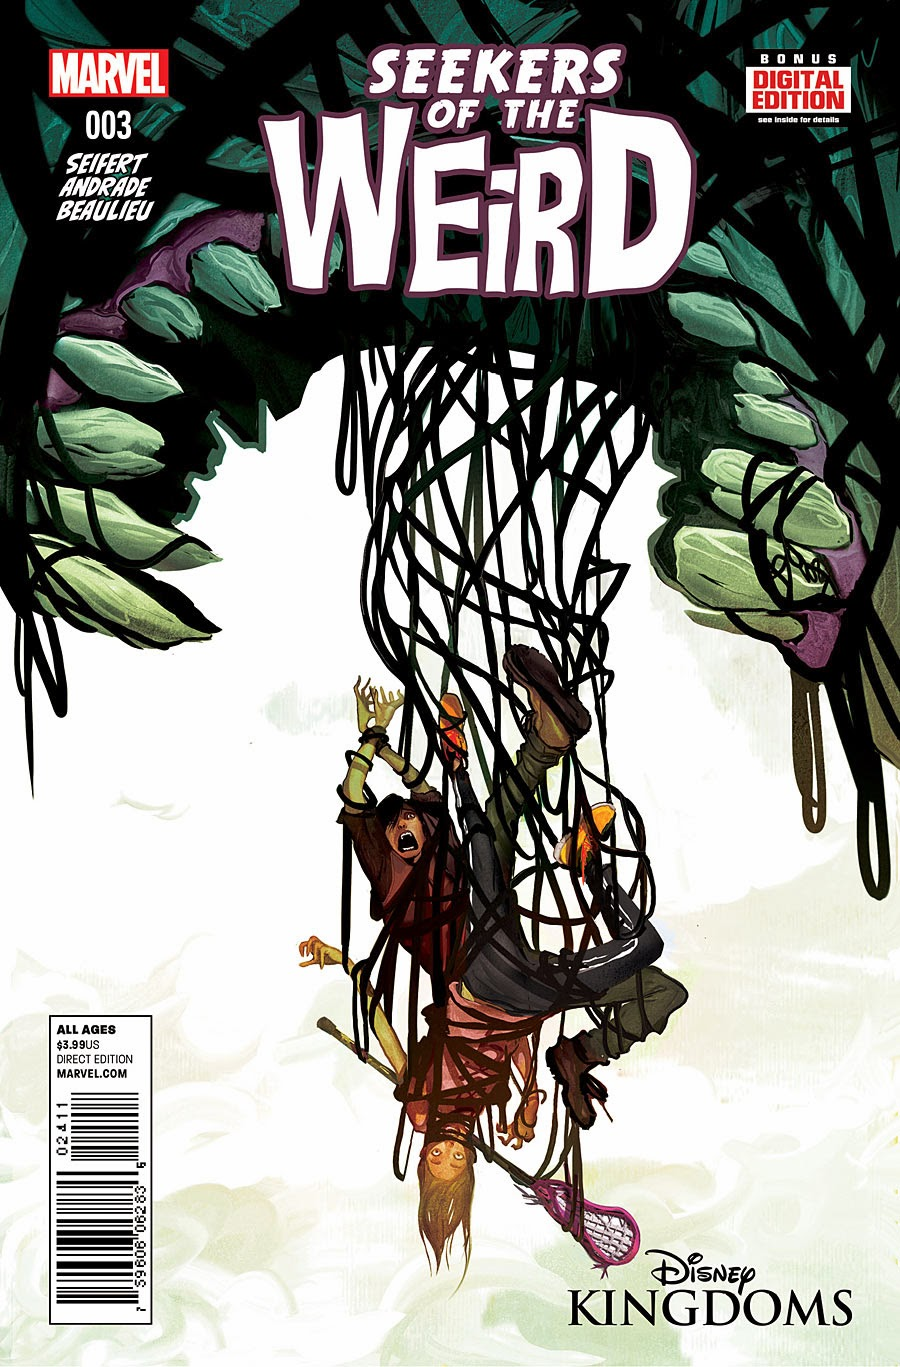 Disney Kingdoms: Seekers of the Weird Vol 1 3